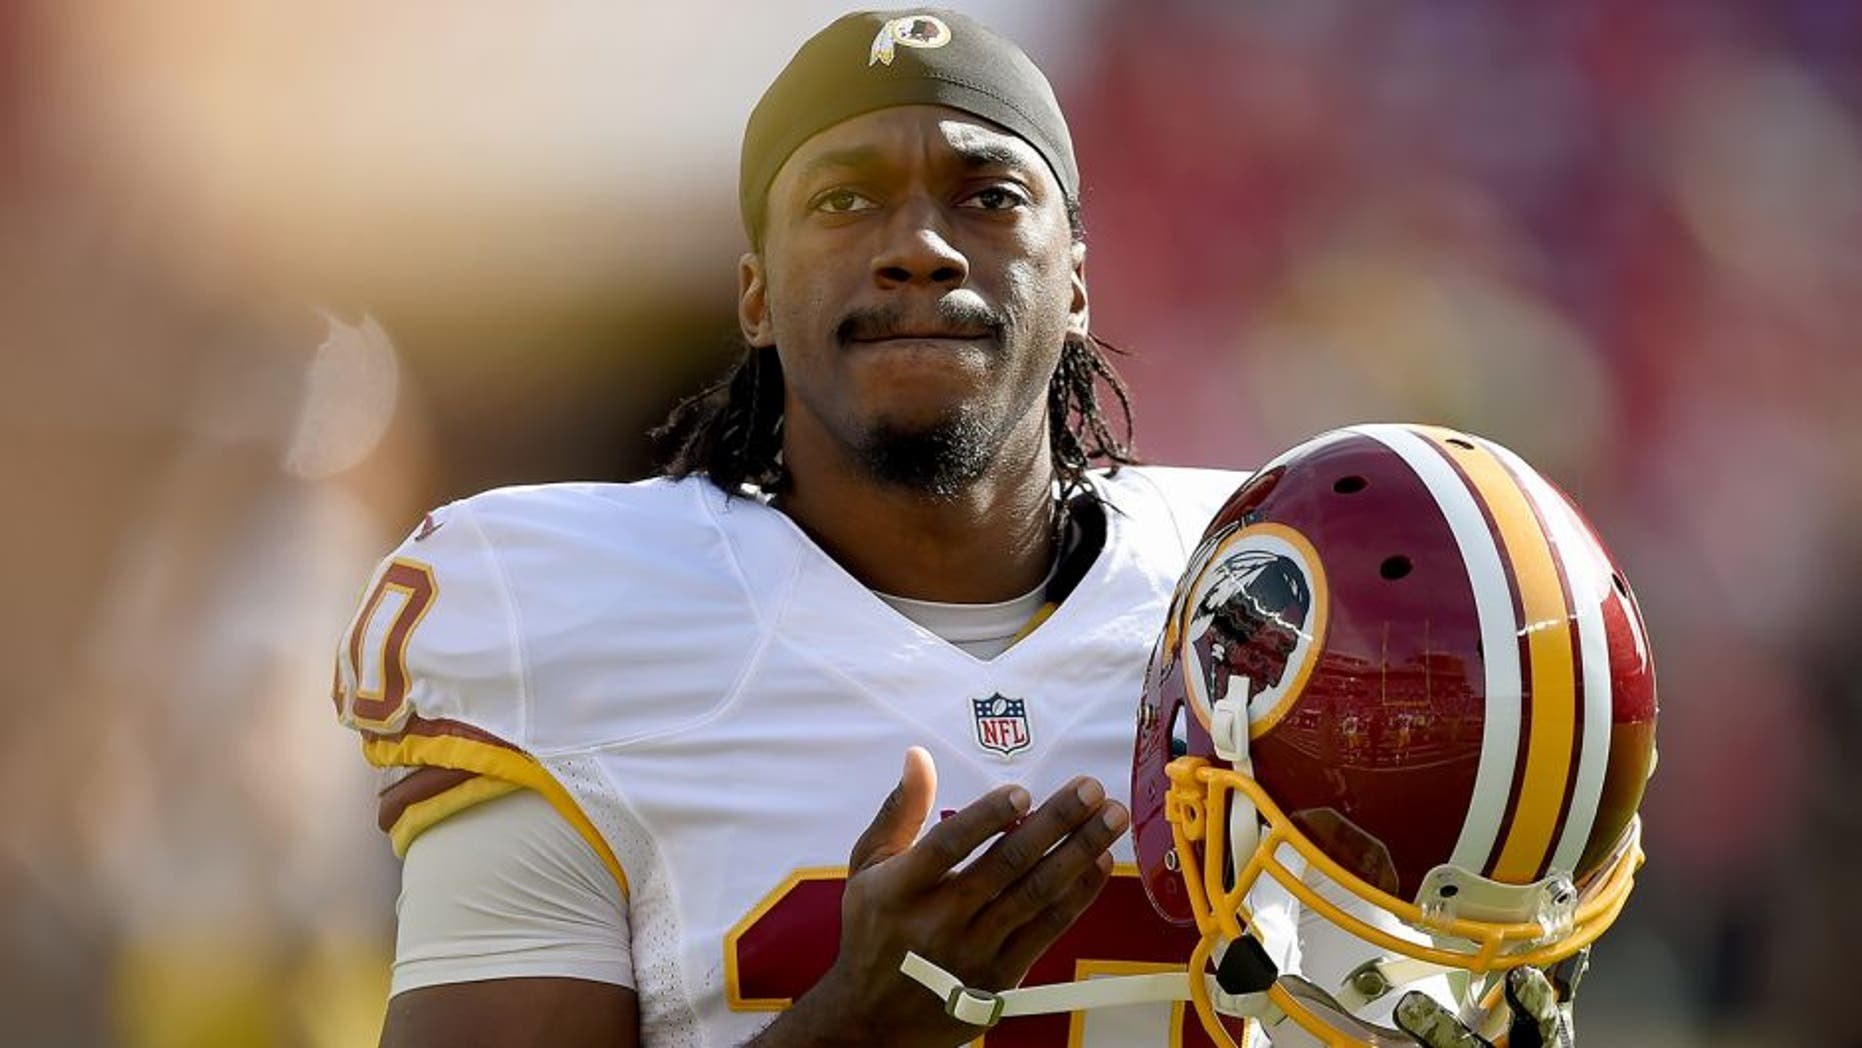 SANTA CLARA, CA - NOVEMBER 23: Robert Griffin III #10 of the Washington Redskins looks on during pre-game warm ups prior to playing the San Francisco 49ers at Levi's Stadium on November 23, 2014 in Santa Clara, California. (Photo by Thearon W. Henderson/Getty Images)